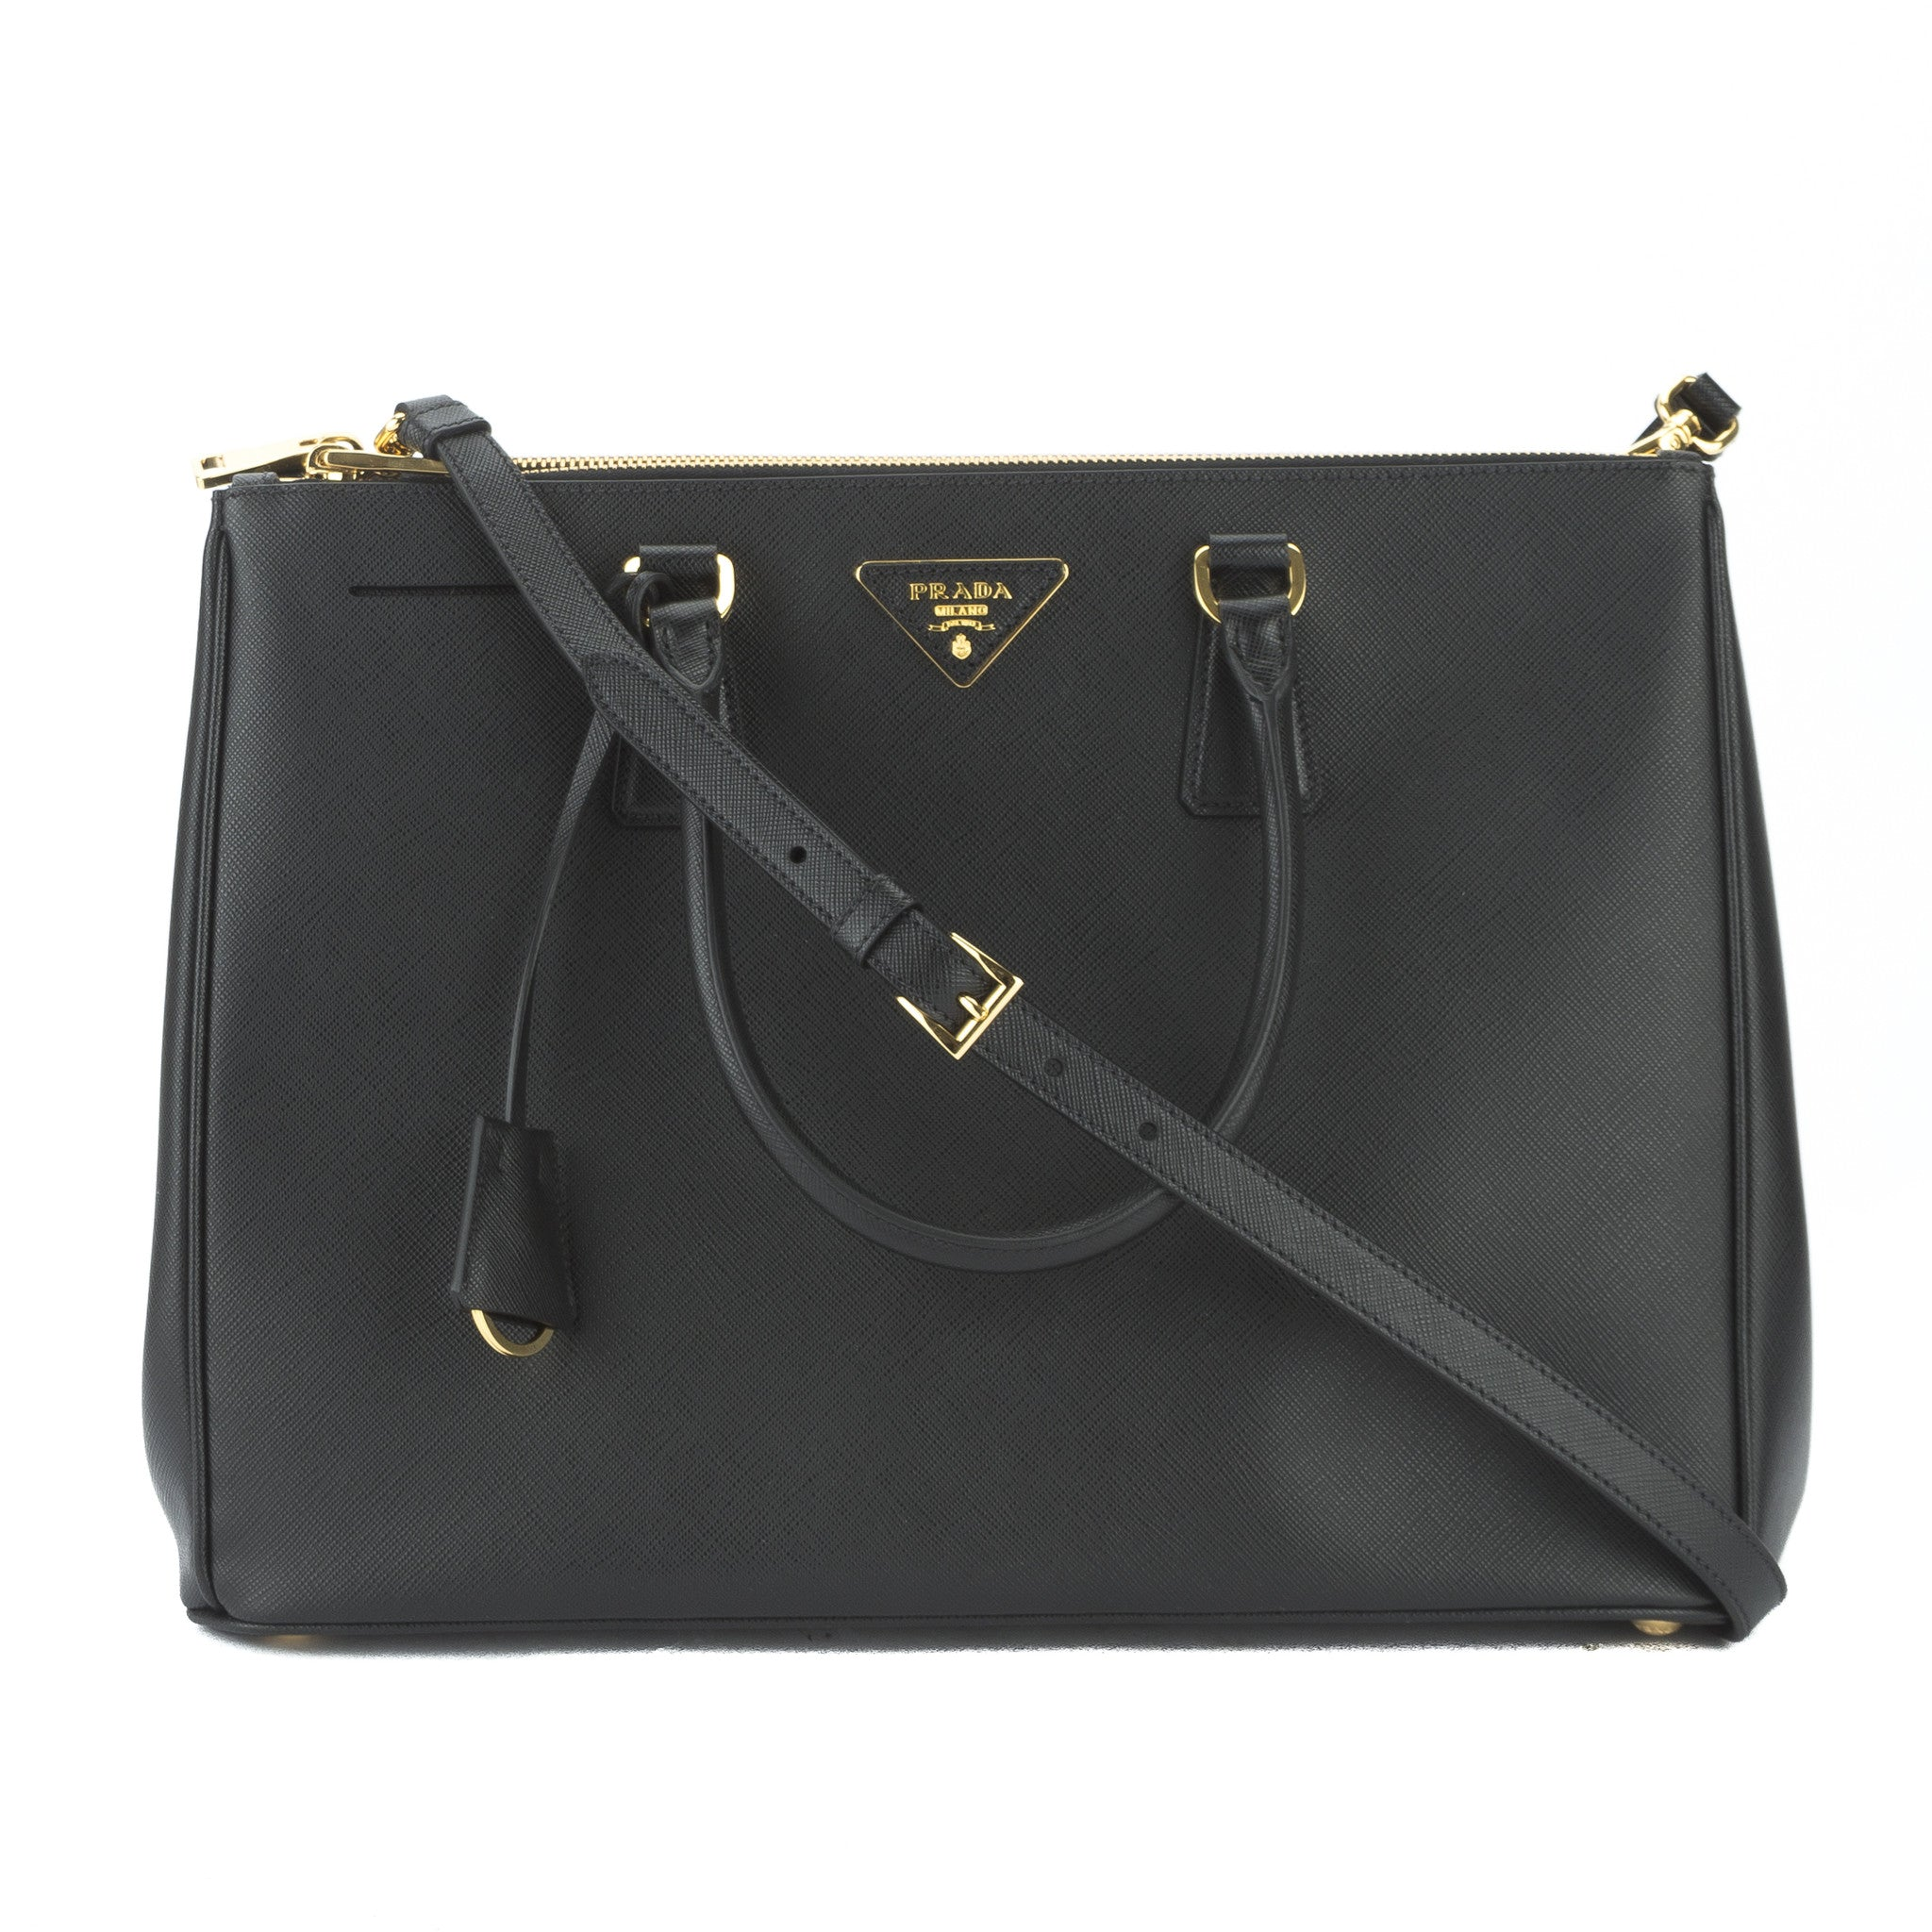 df9243f679ce0c Prada Black Saffiano Lux Large Galleria Bag (New with Tags ...